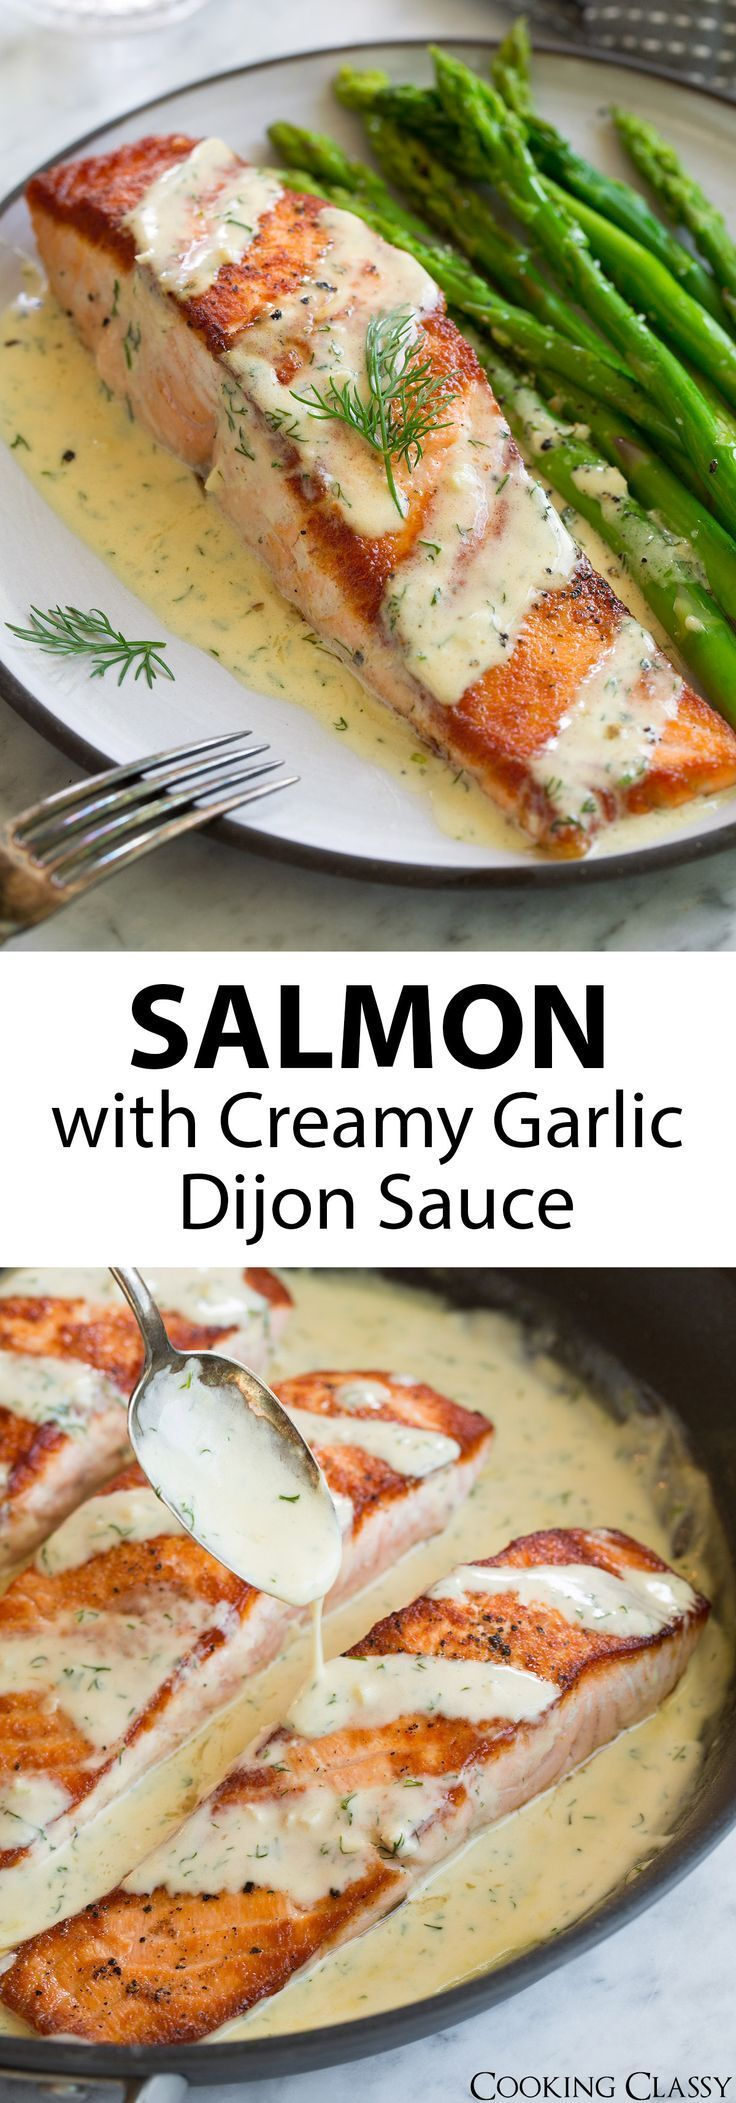 Salmon with Creamy Garlic Dijon Sauce - This is such a flavorful, -   18 salmon recipes ideas